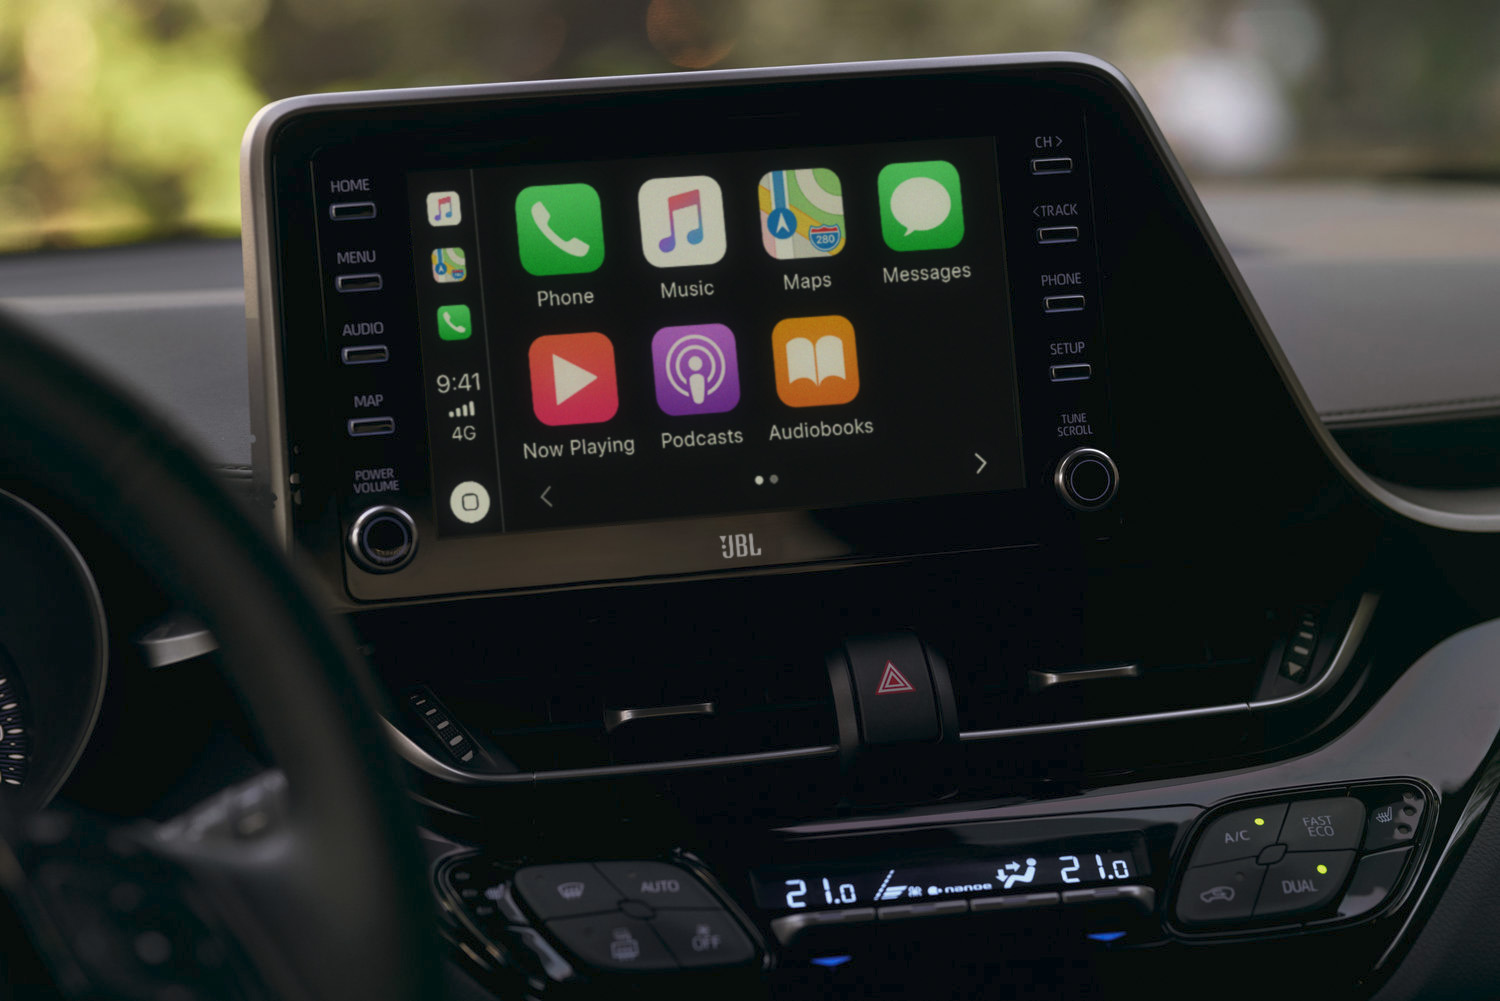 Apple CarPlay and Android Auto are included in the infotainment setup